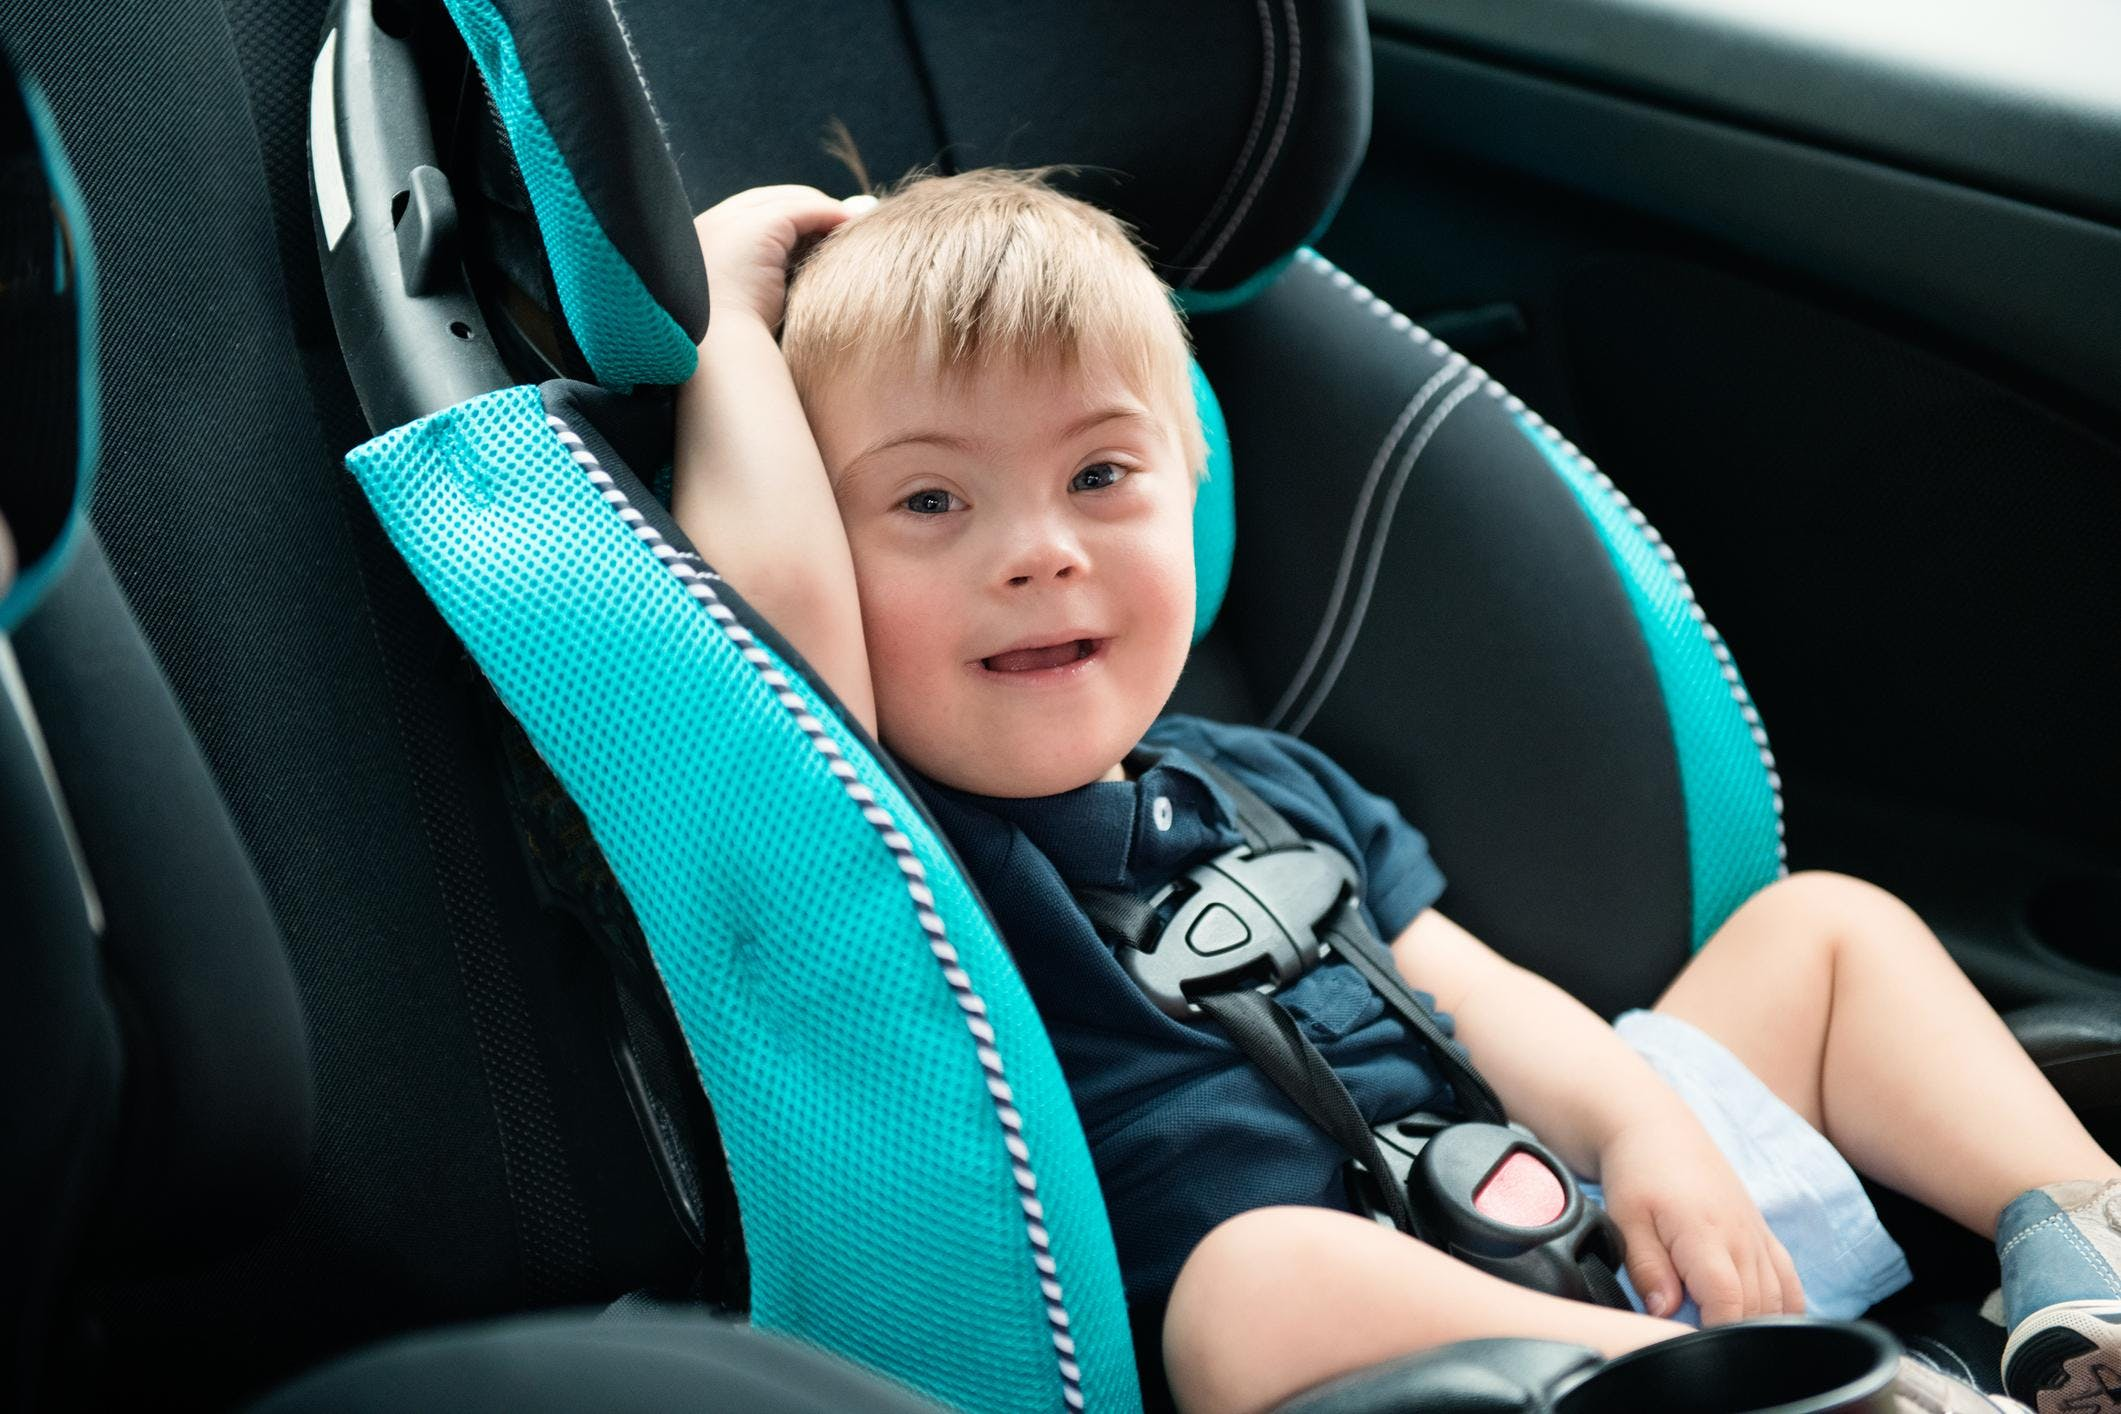 Safe Travel for All Children: Transporting Children with Special Health Care Needs